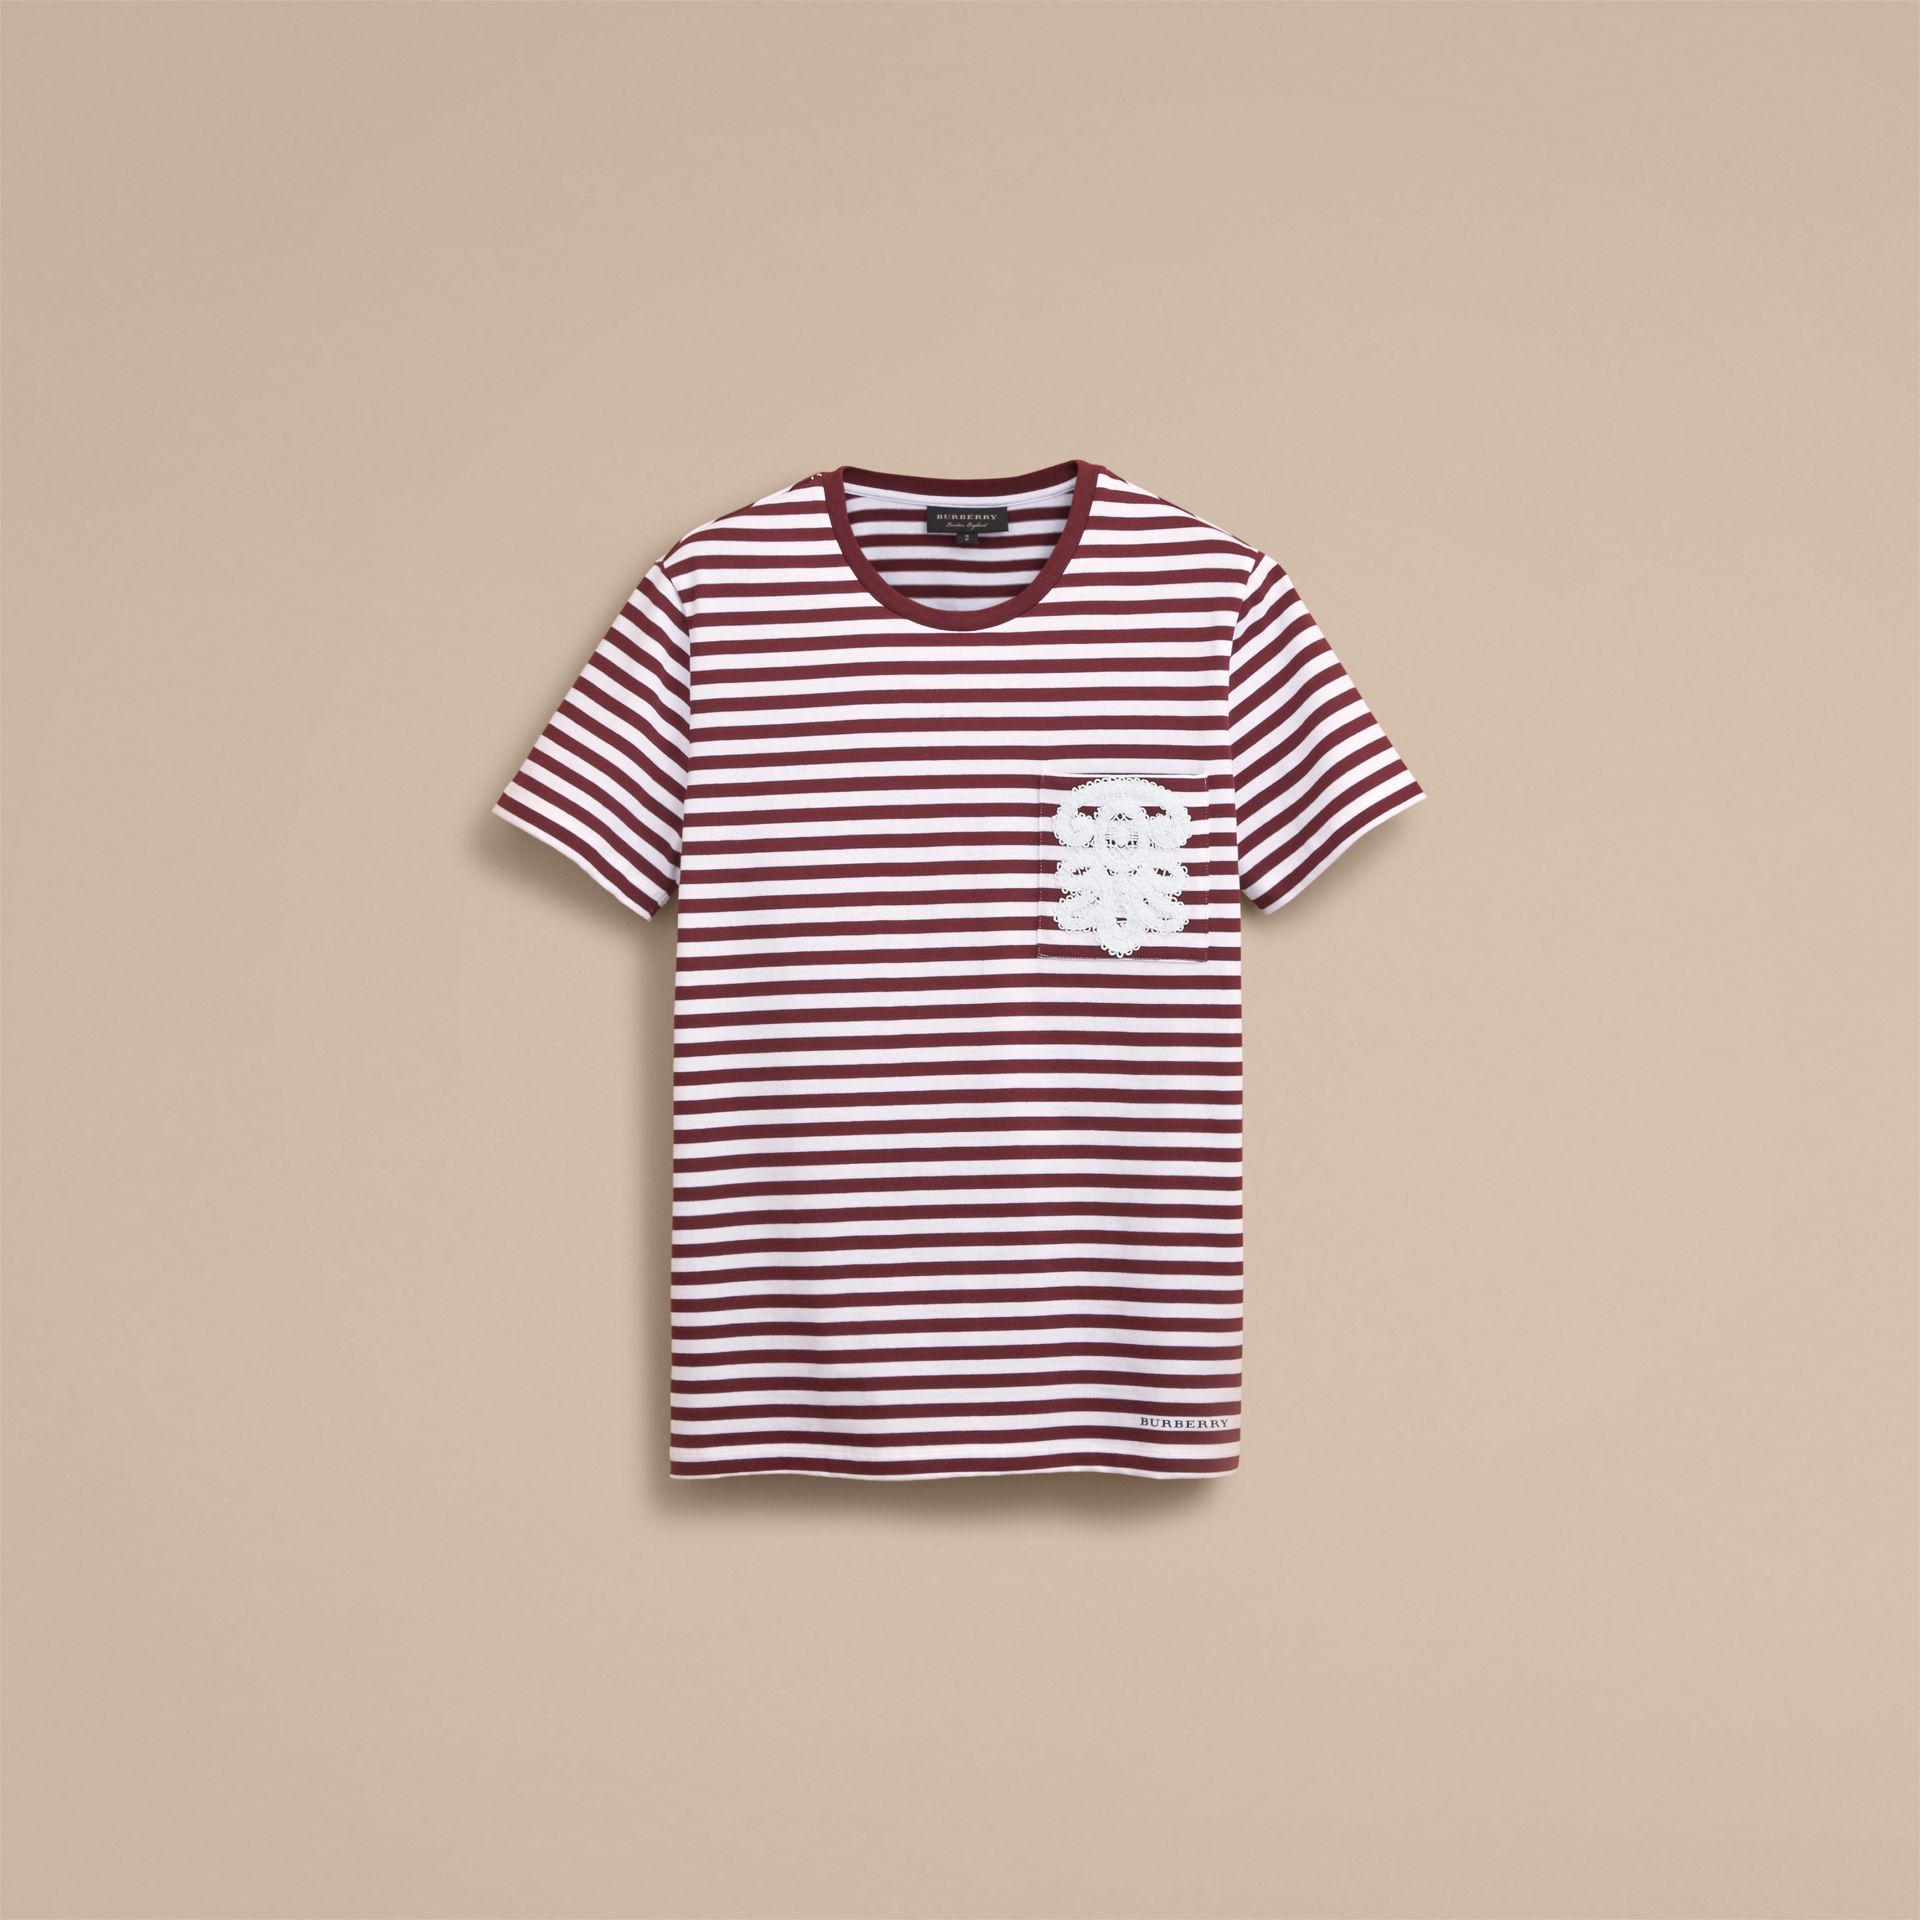 Lace Appliqué Detail Breton Stripe Cotton T-shirt in Burgundy/white - Men | Burberry - gallery image 3